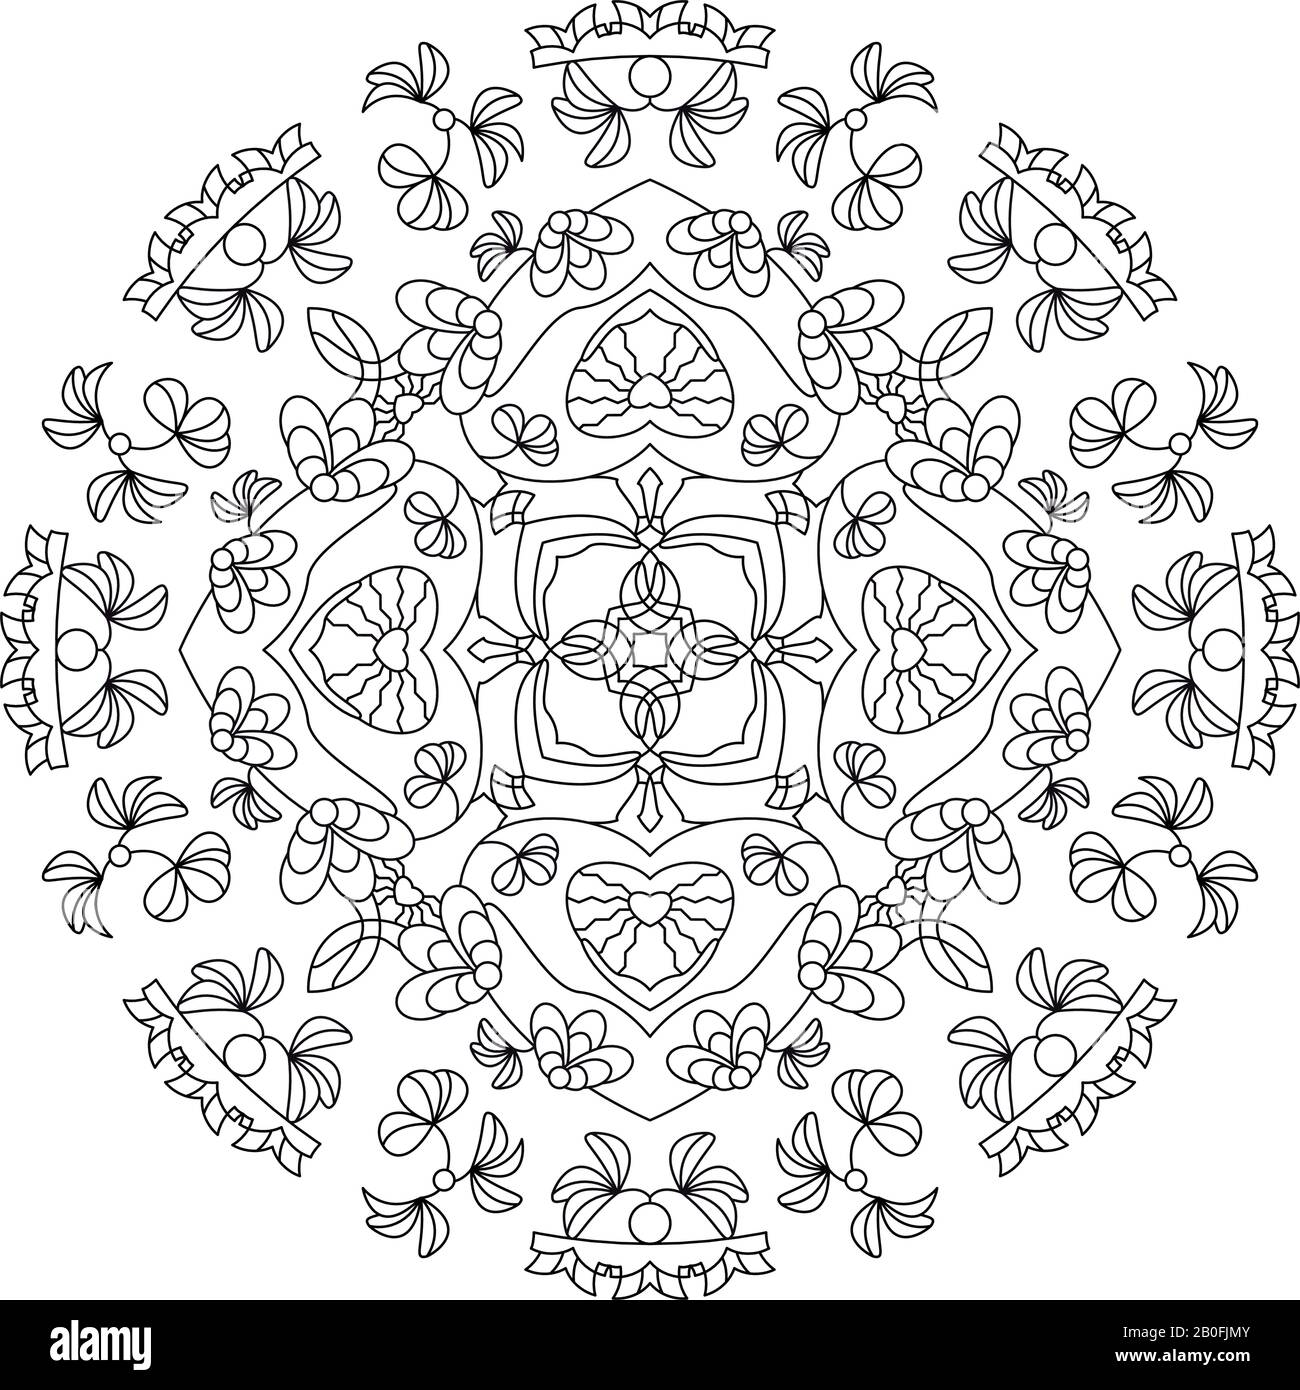 Mandala Coloring Page Hearts Mandala Illustration Vector Art Therapy Decorative Element Stock Vector Image Art Alamy